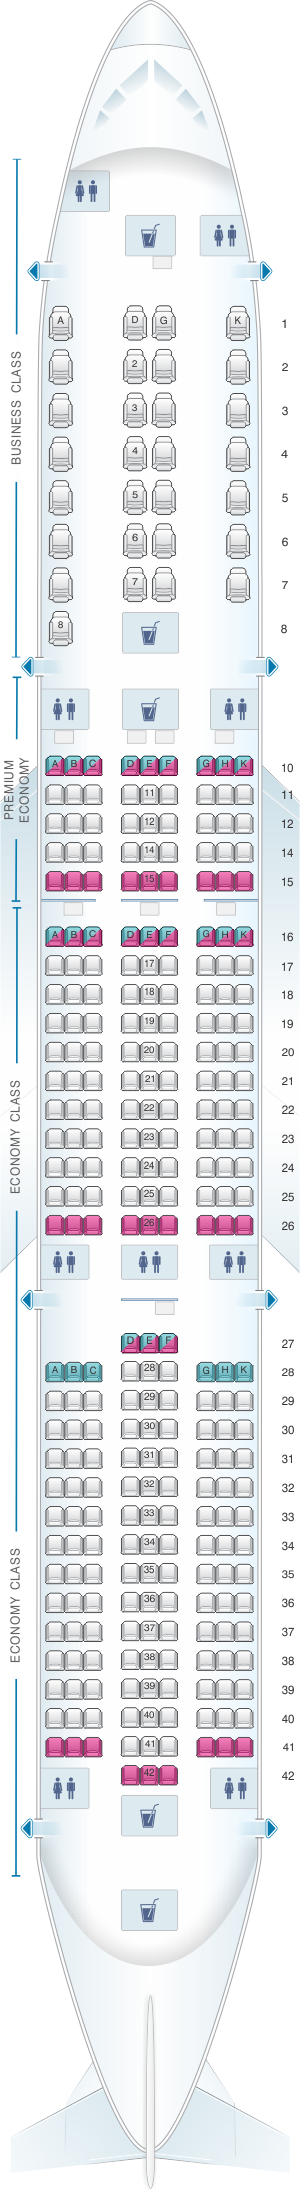 Seat map for Vietnam Airlines Airbus A350 Config.1